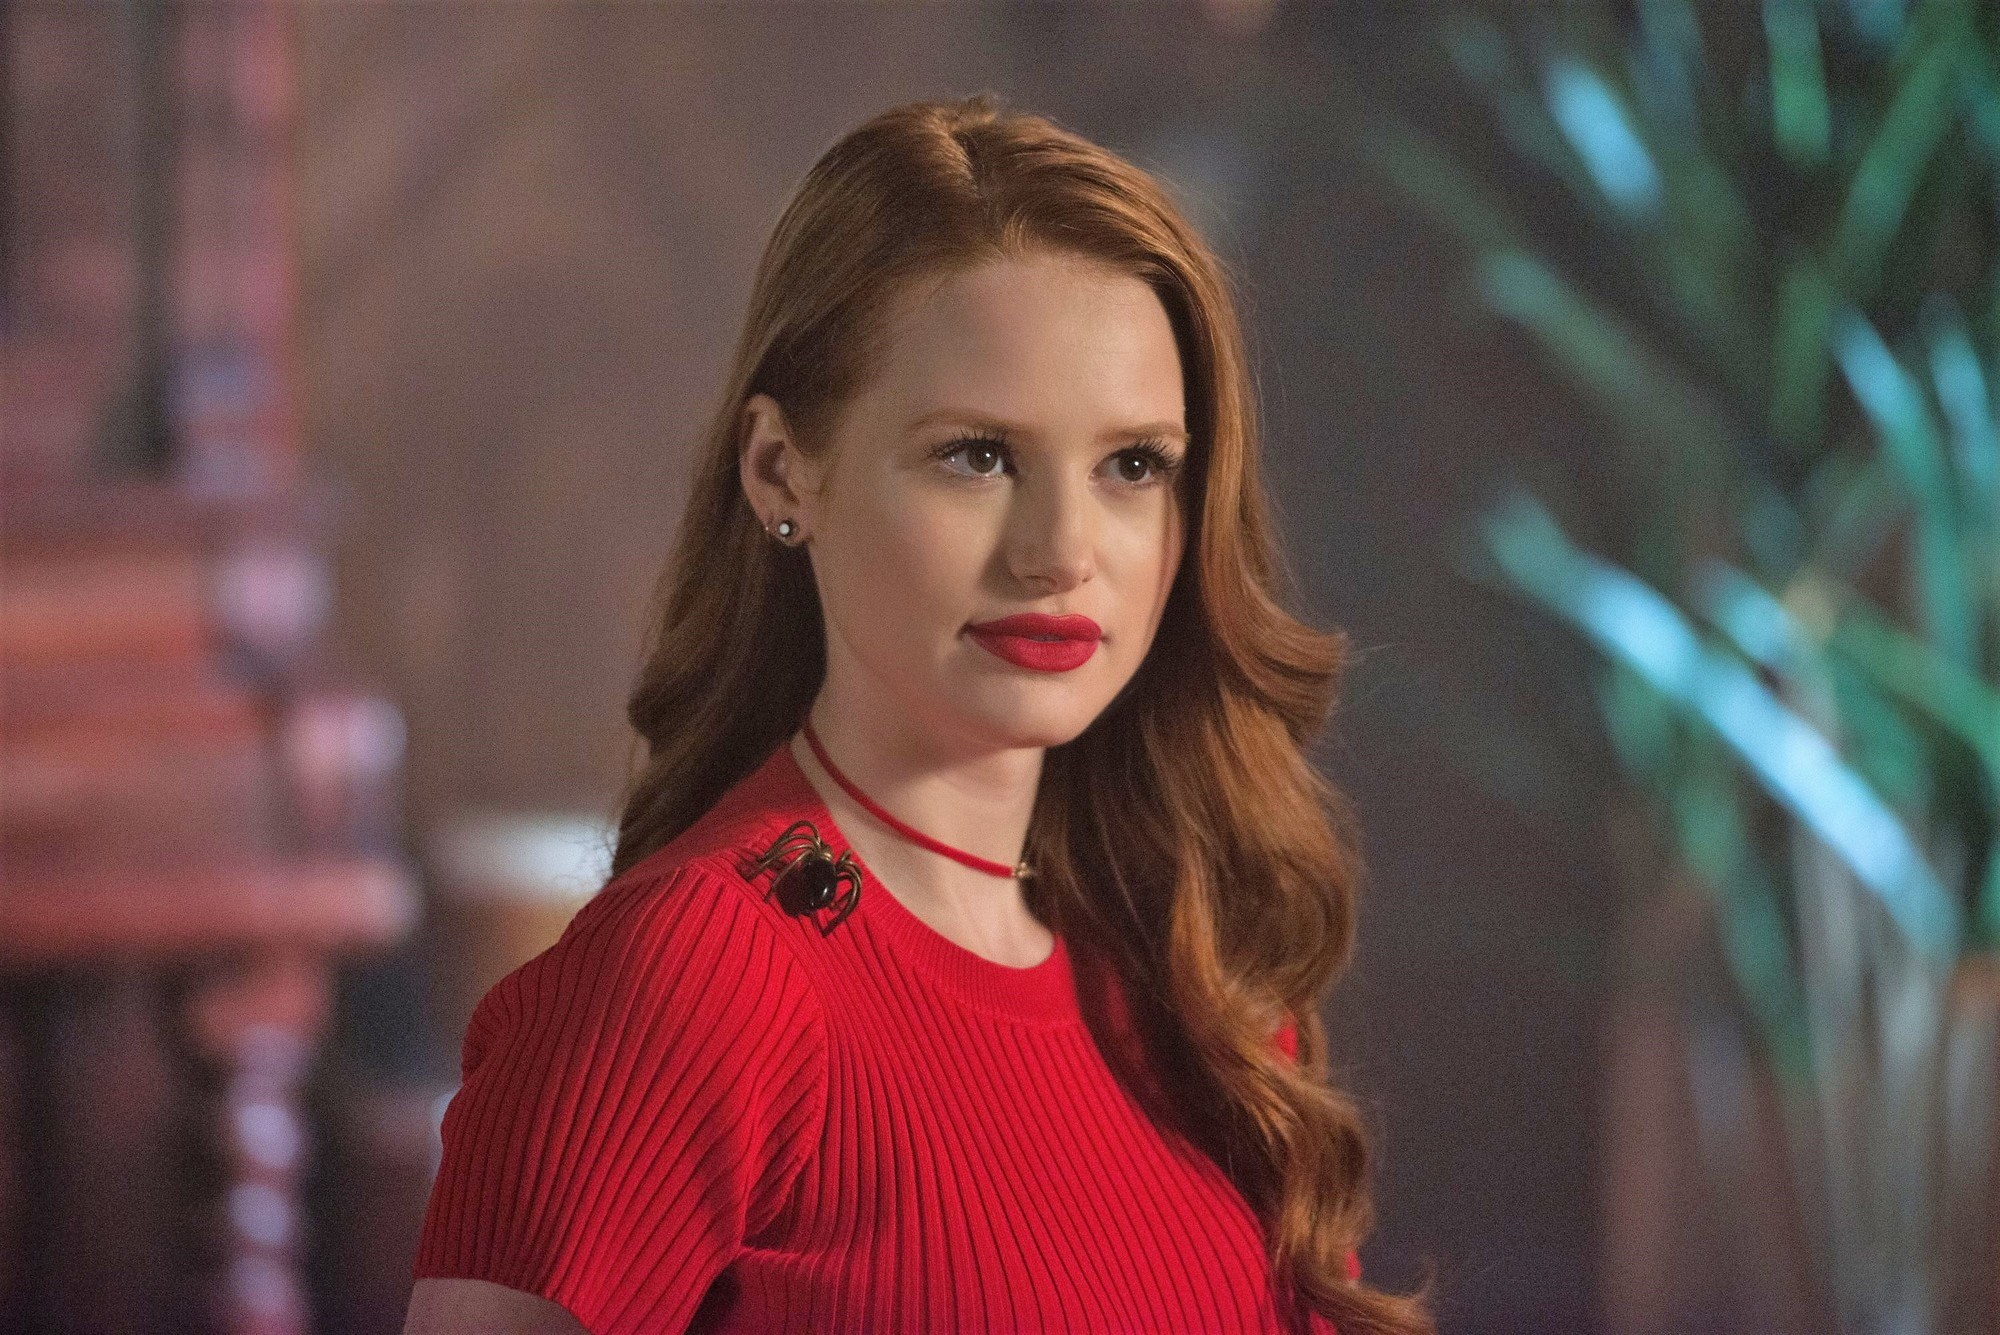 riverdale actress Madelaine Petsch who plays character Cheryl Blossom with sideswept red long curly hair